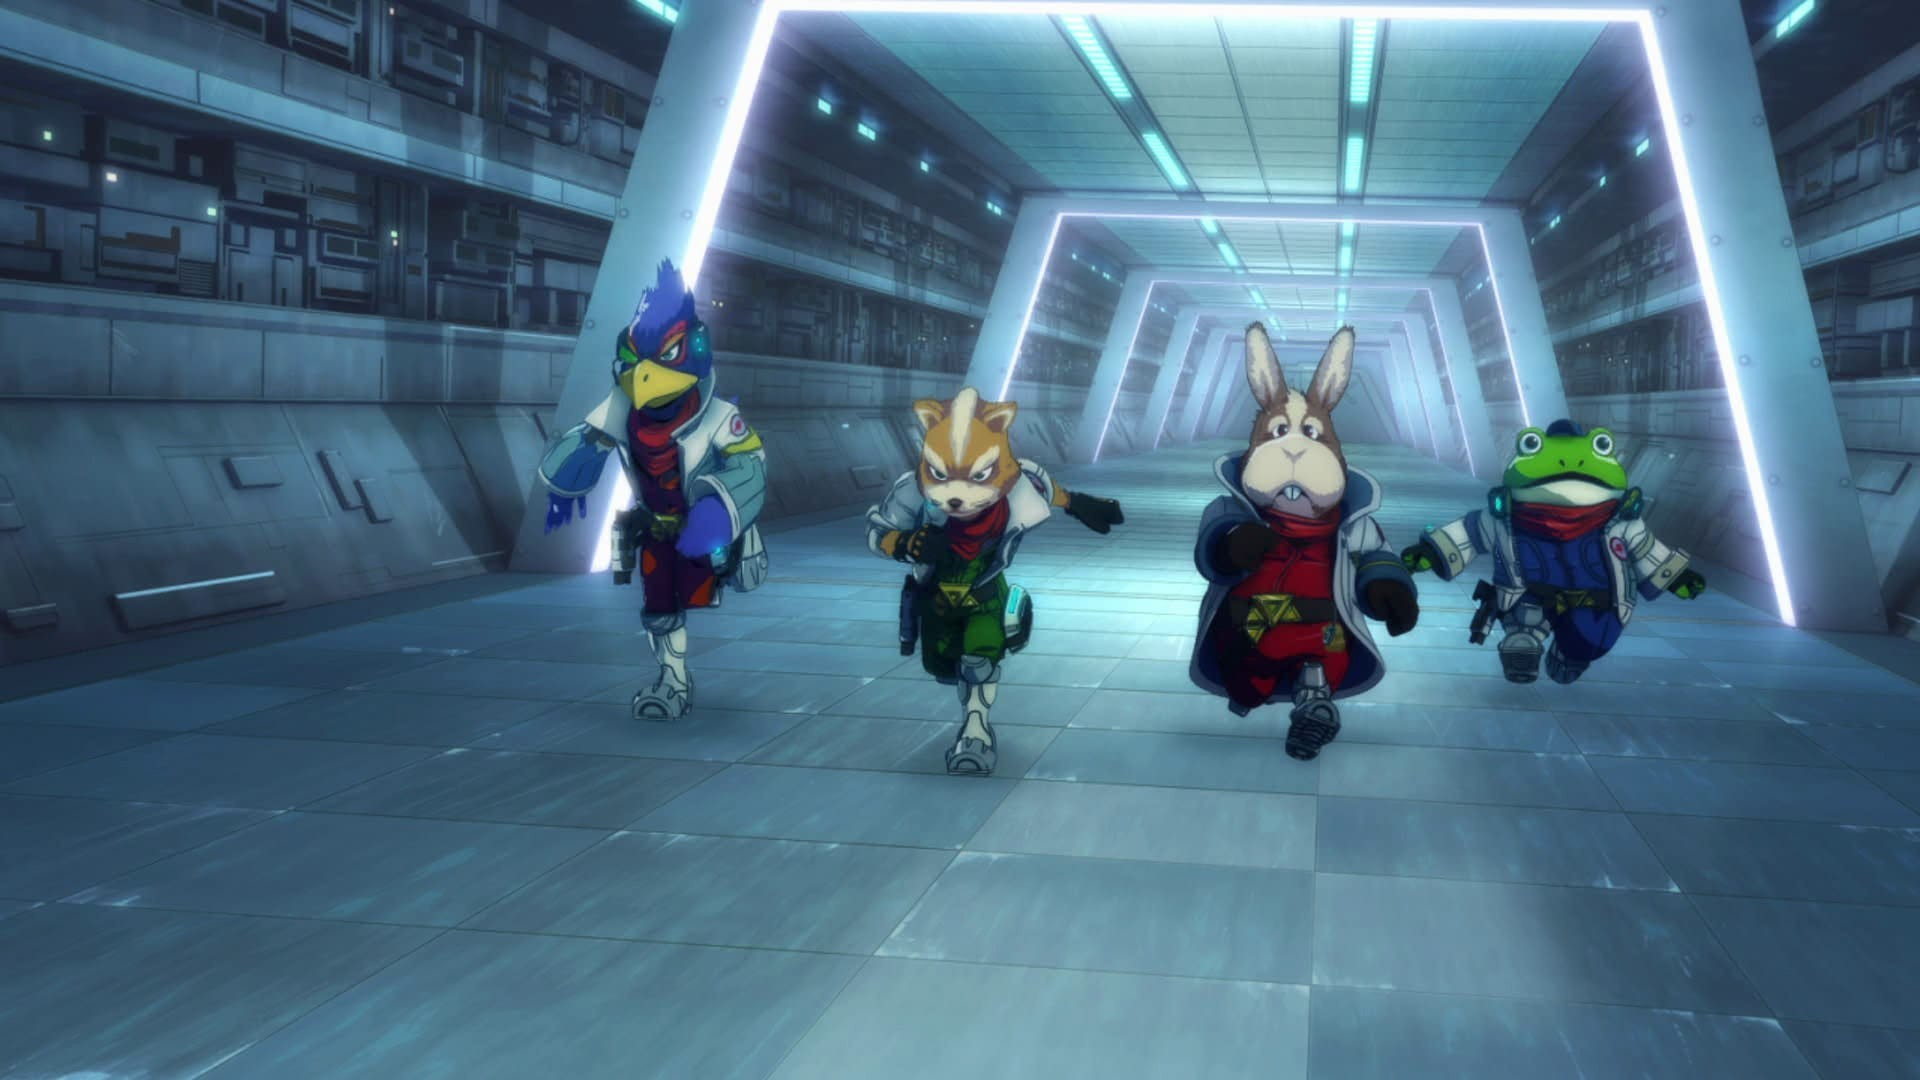 1920x1080 Starfox Deploying